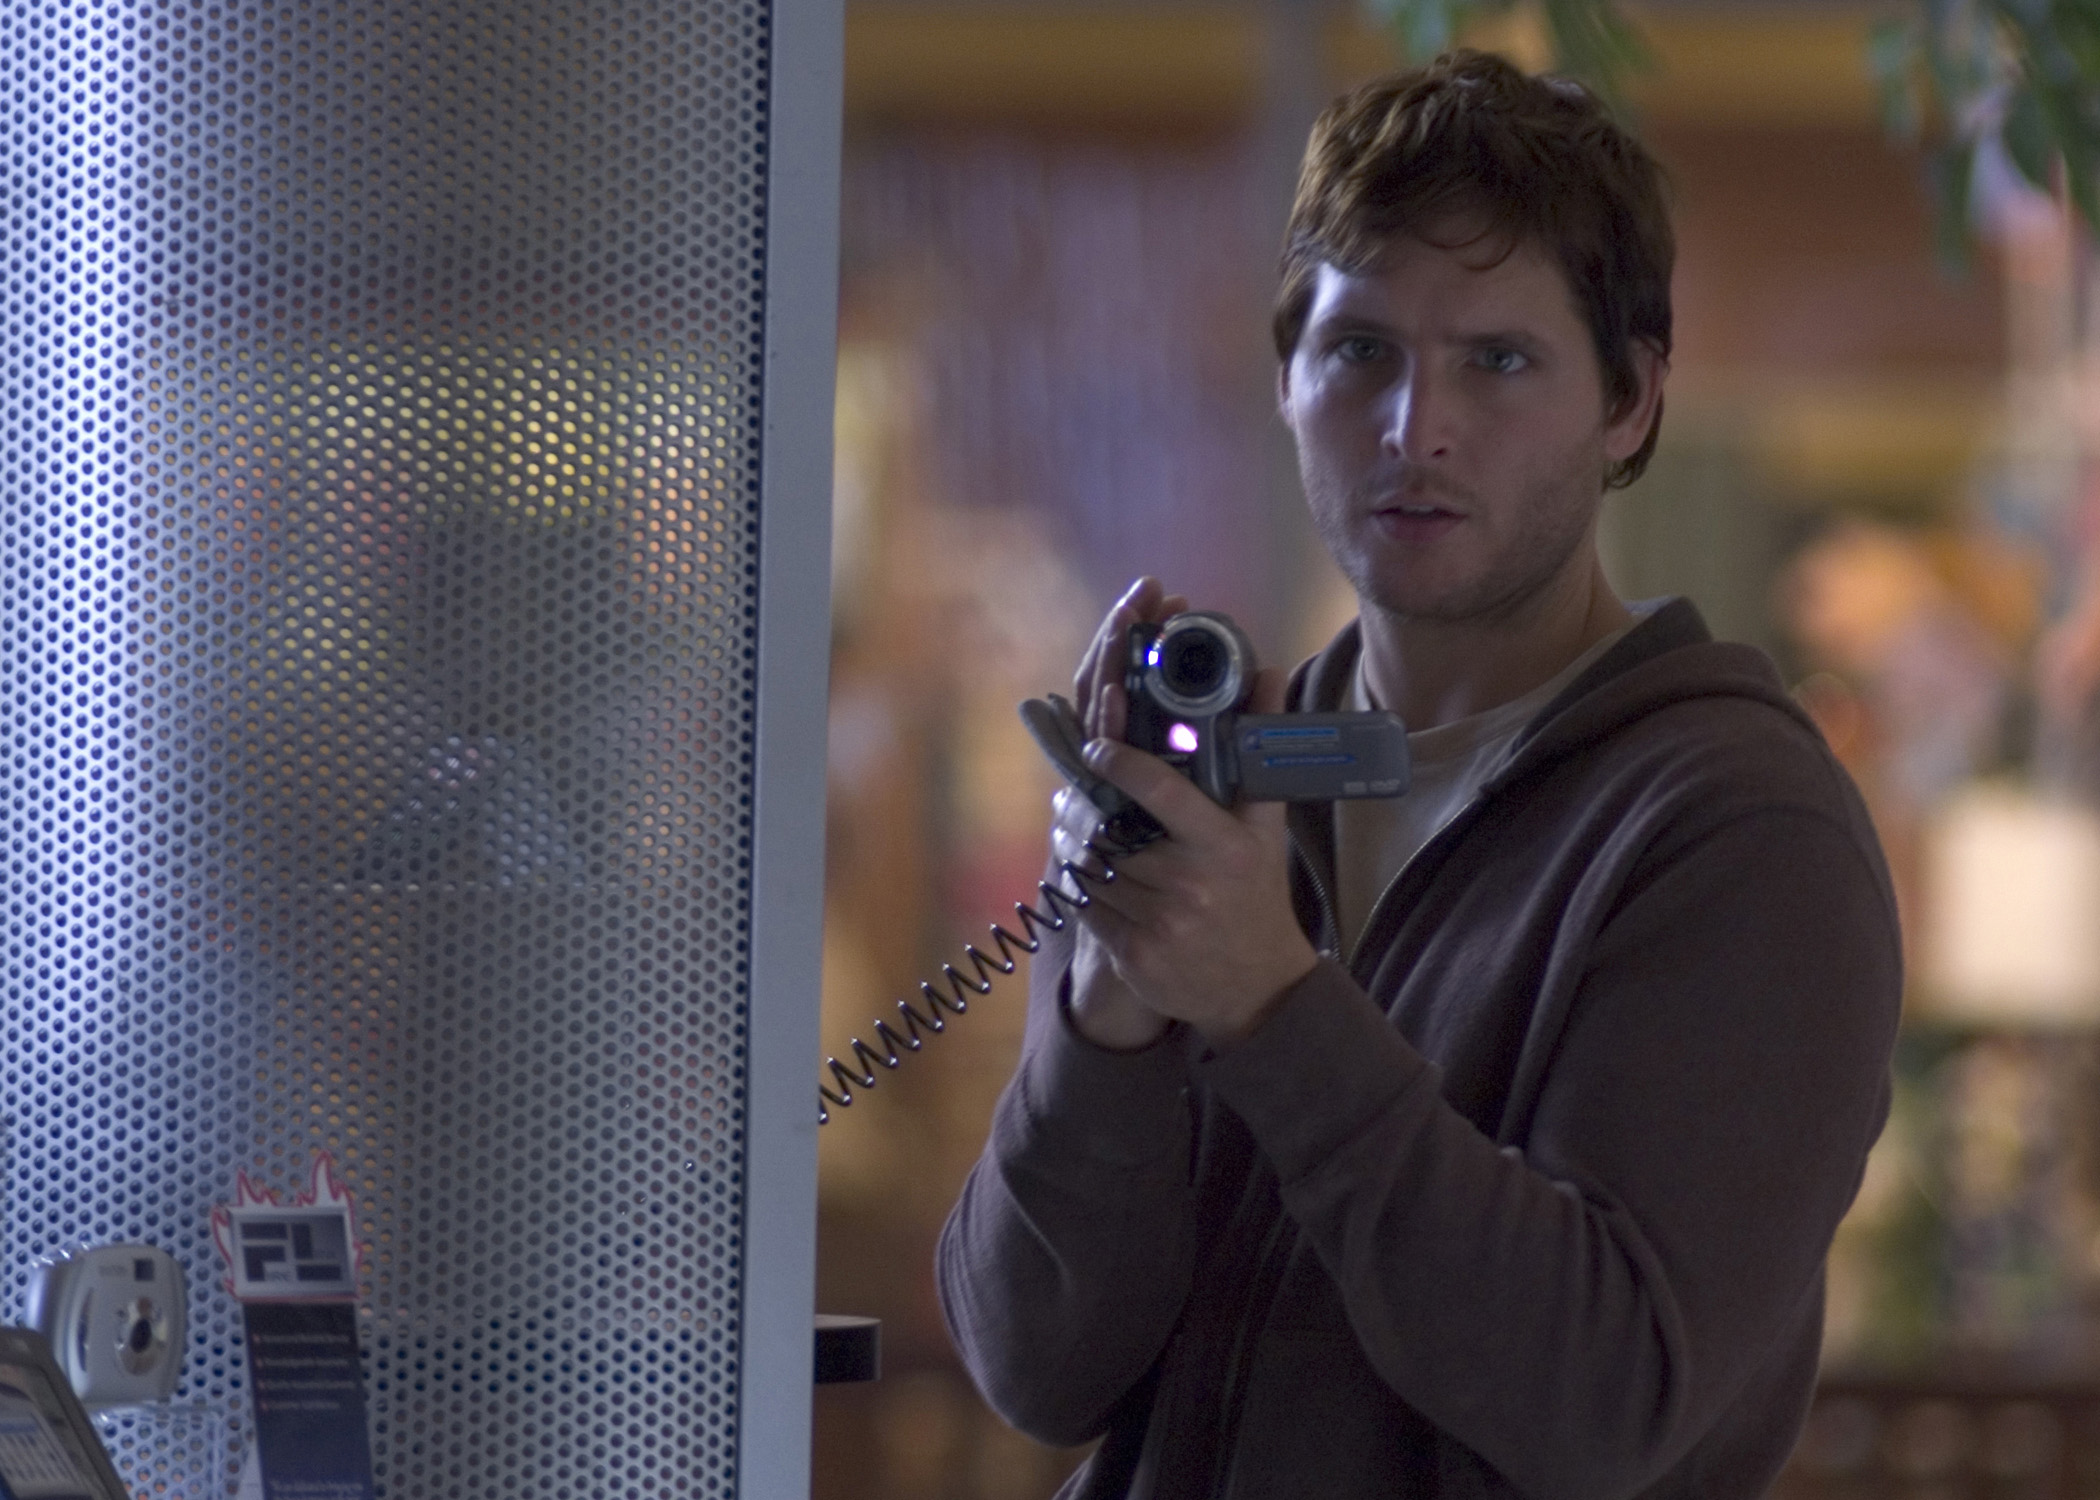 Peter Facinelli in Hollow Man II (2006)